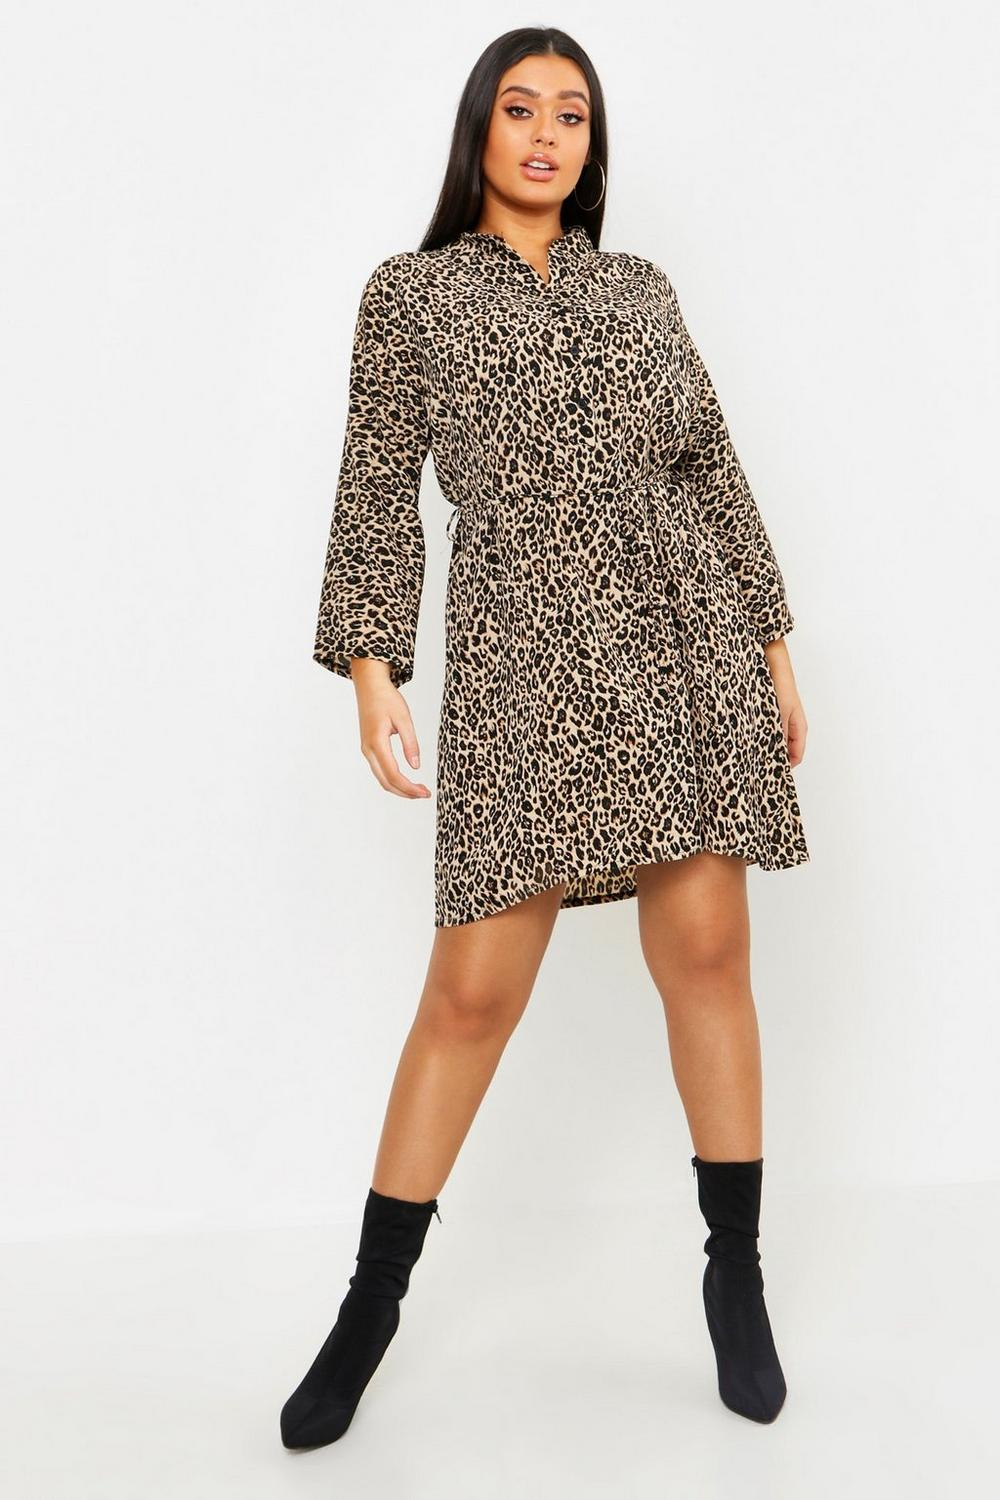 760bd28c14 Plus Leopard Print Tie Shirt Dress. Hover to zoom